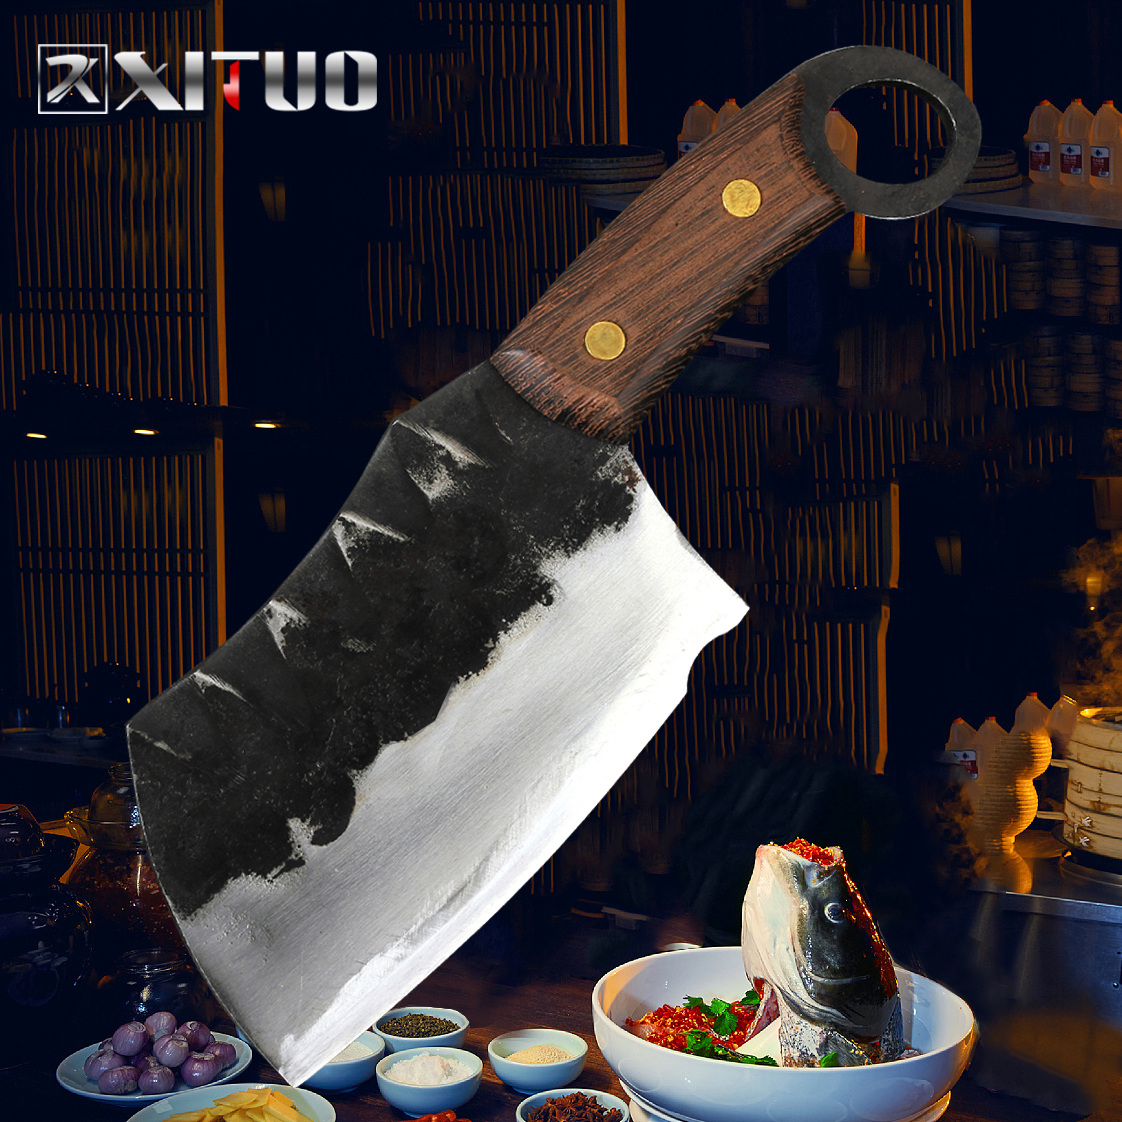 XITUO High Carbon Clad Steel Forging Handmade Knife Japanese Santoku Chef Knife Non-stick Nakiri Cleaver Gyuto Kiritsuke KnifeXITUO High Carbon Clad Steel Forging Handmade Knife Japanese Santoku Chef Knife Non-stick Nakiri Cleaver Gyuto Kiritsuke Knife